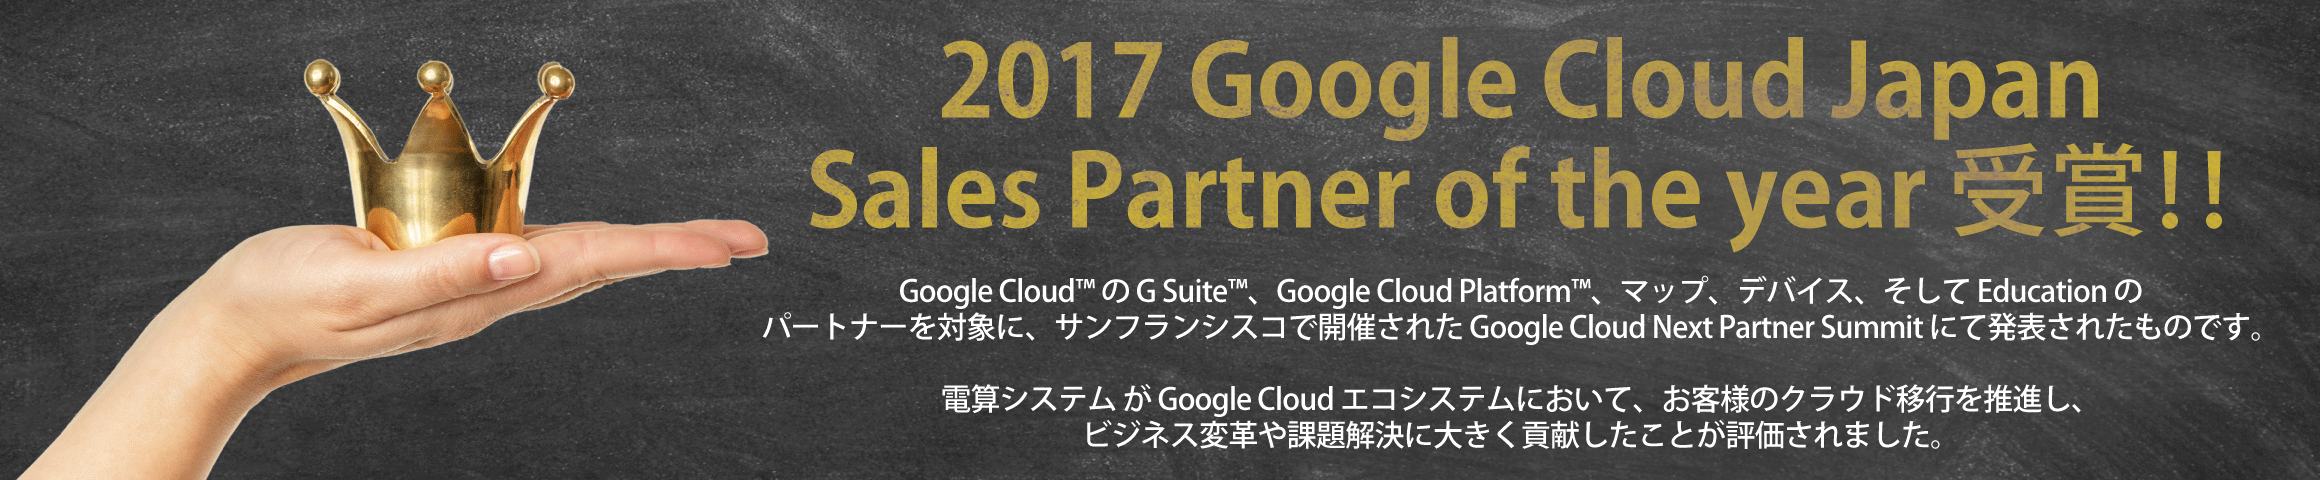 2017 Google Cloud Japan Sales Partner of the year 受賞!!